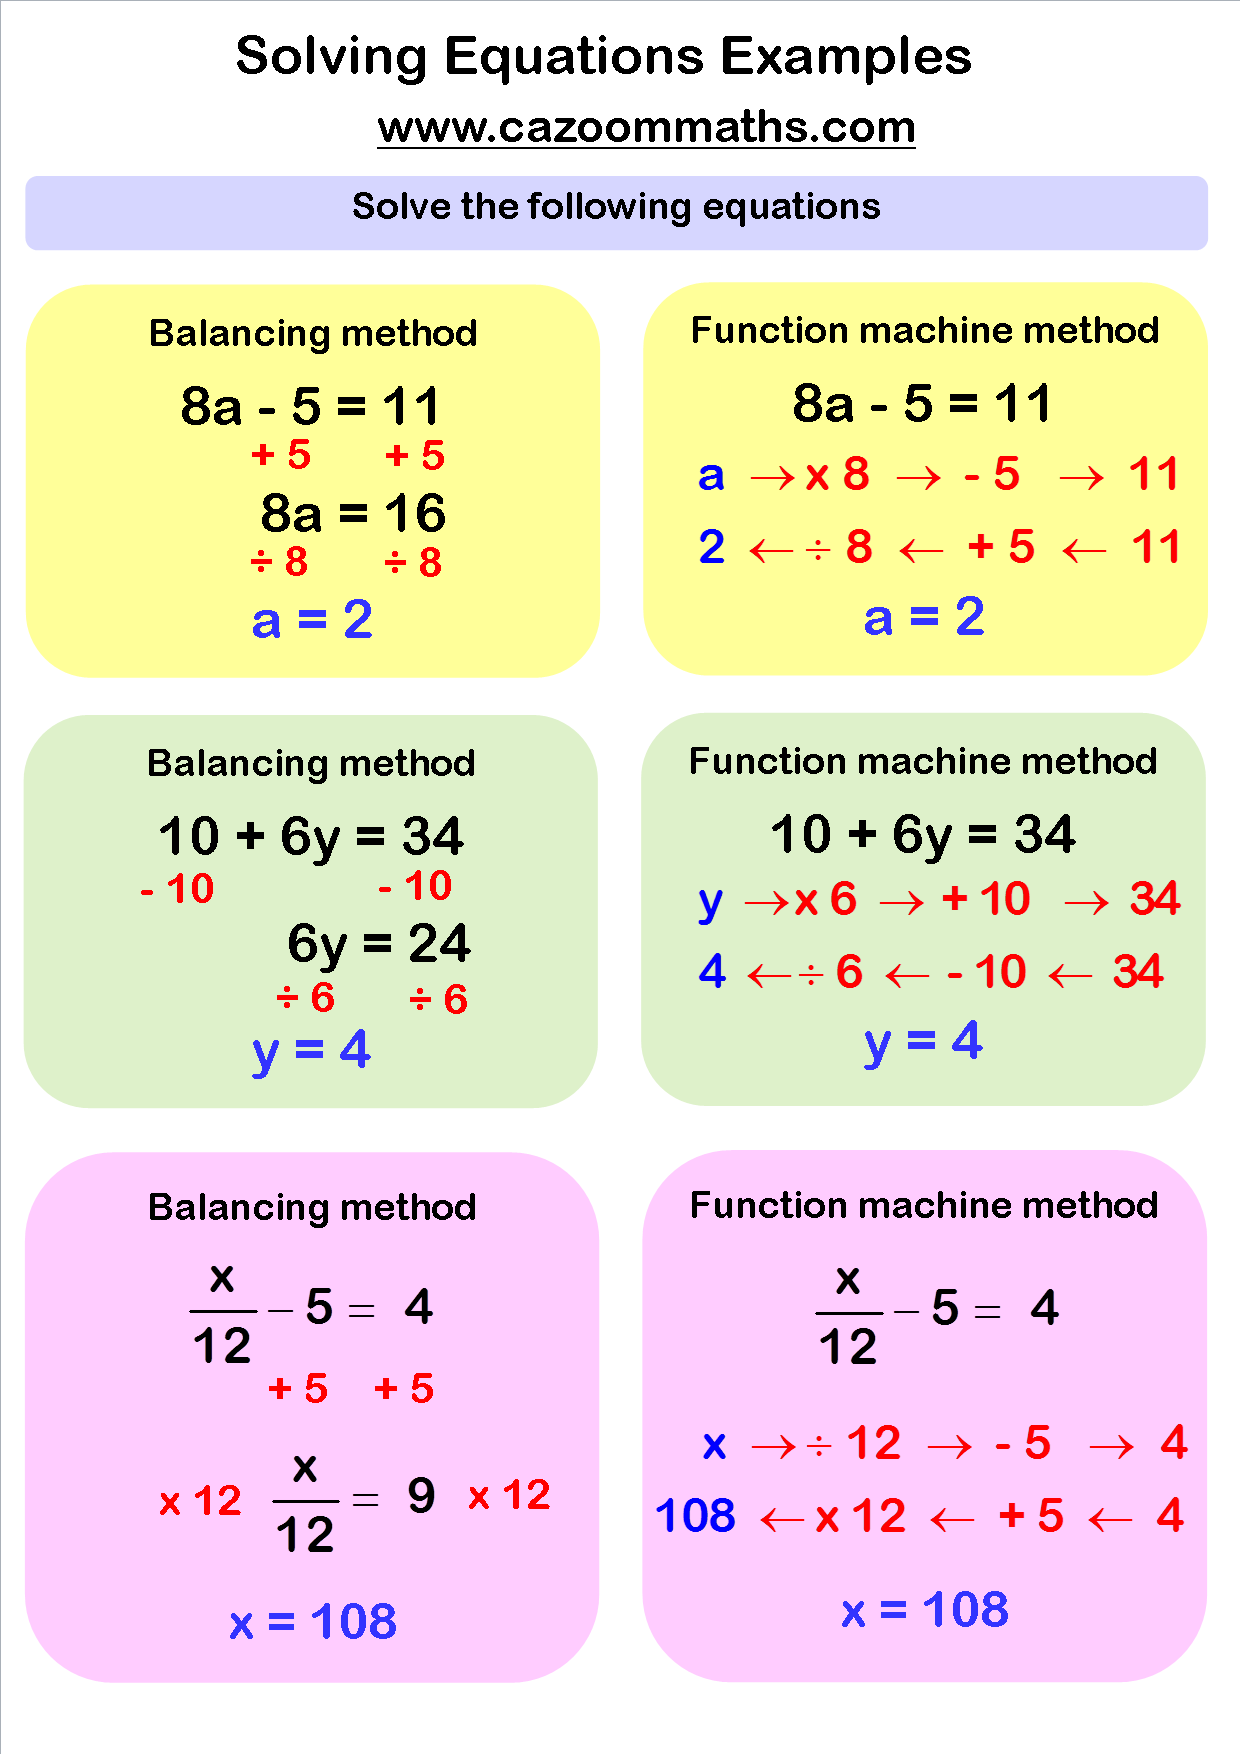 hight resolution of Solving Equations Worksheets   Cazoom Maths Worksheets   Algebra worksheets